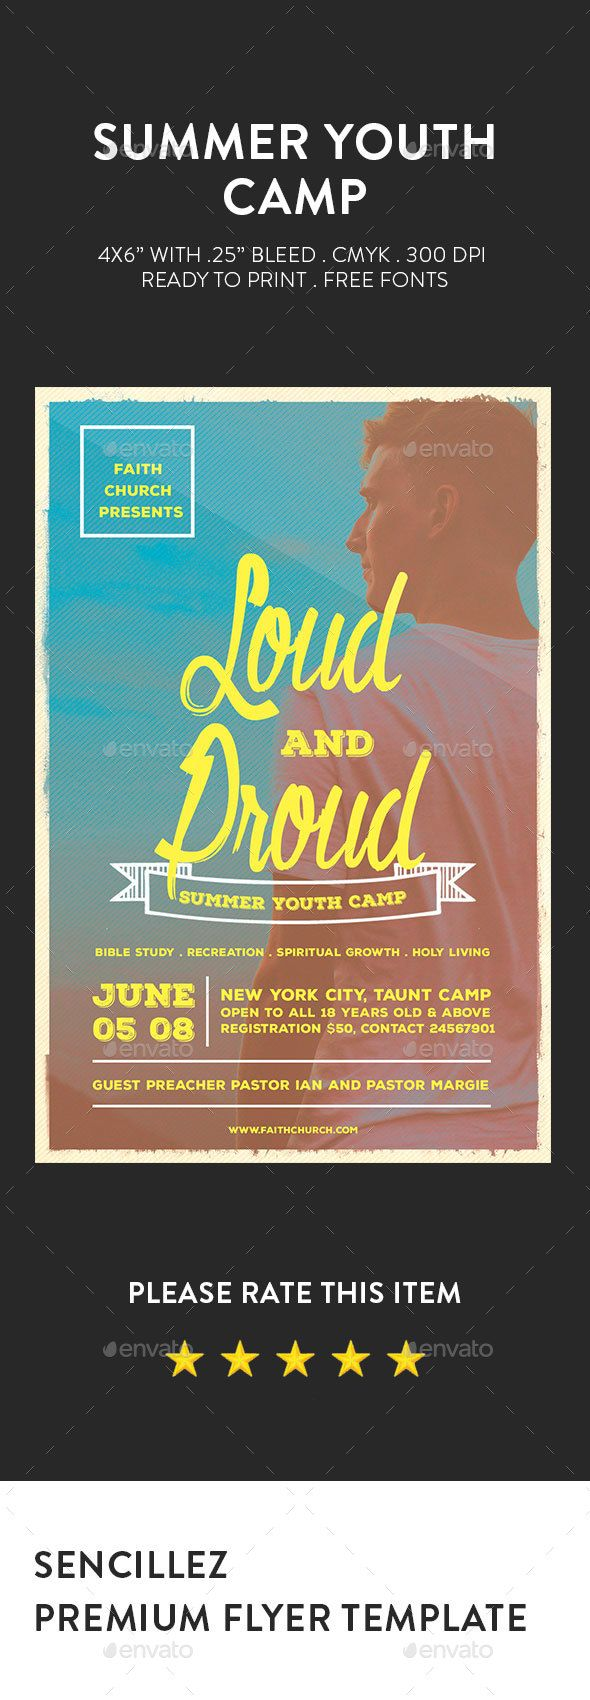 Summer Youth Camp Flyer — Photoshop PSD #youth camp flyer #speaker • Available here → https://graphicriver.net/item/summer-youth-camp-flyer/15938053?ref=pxcr